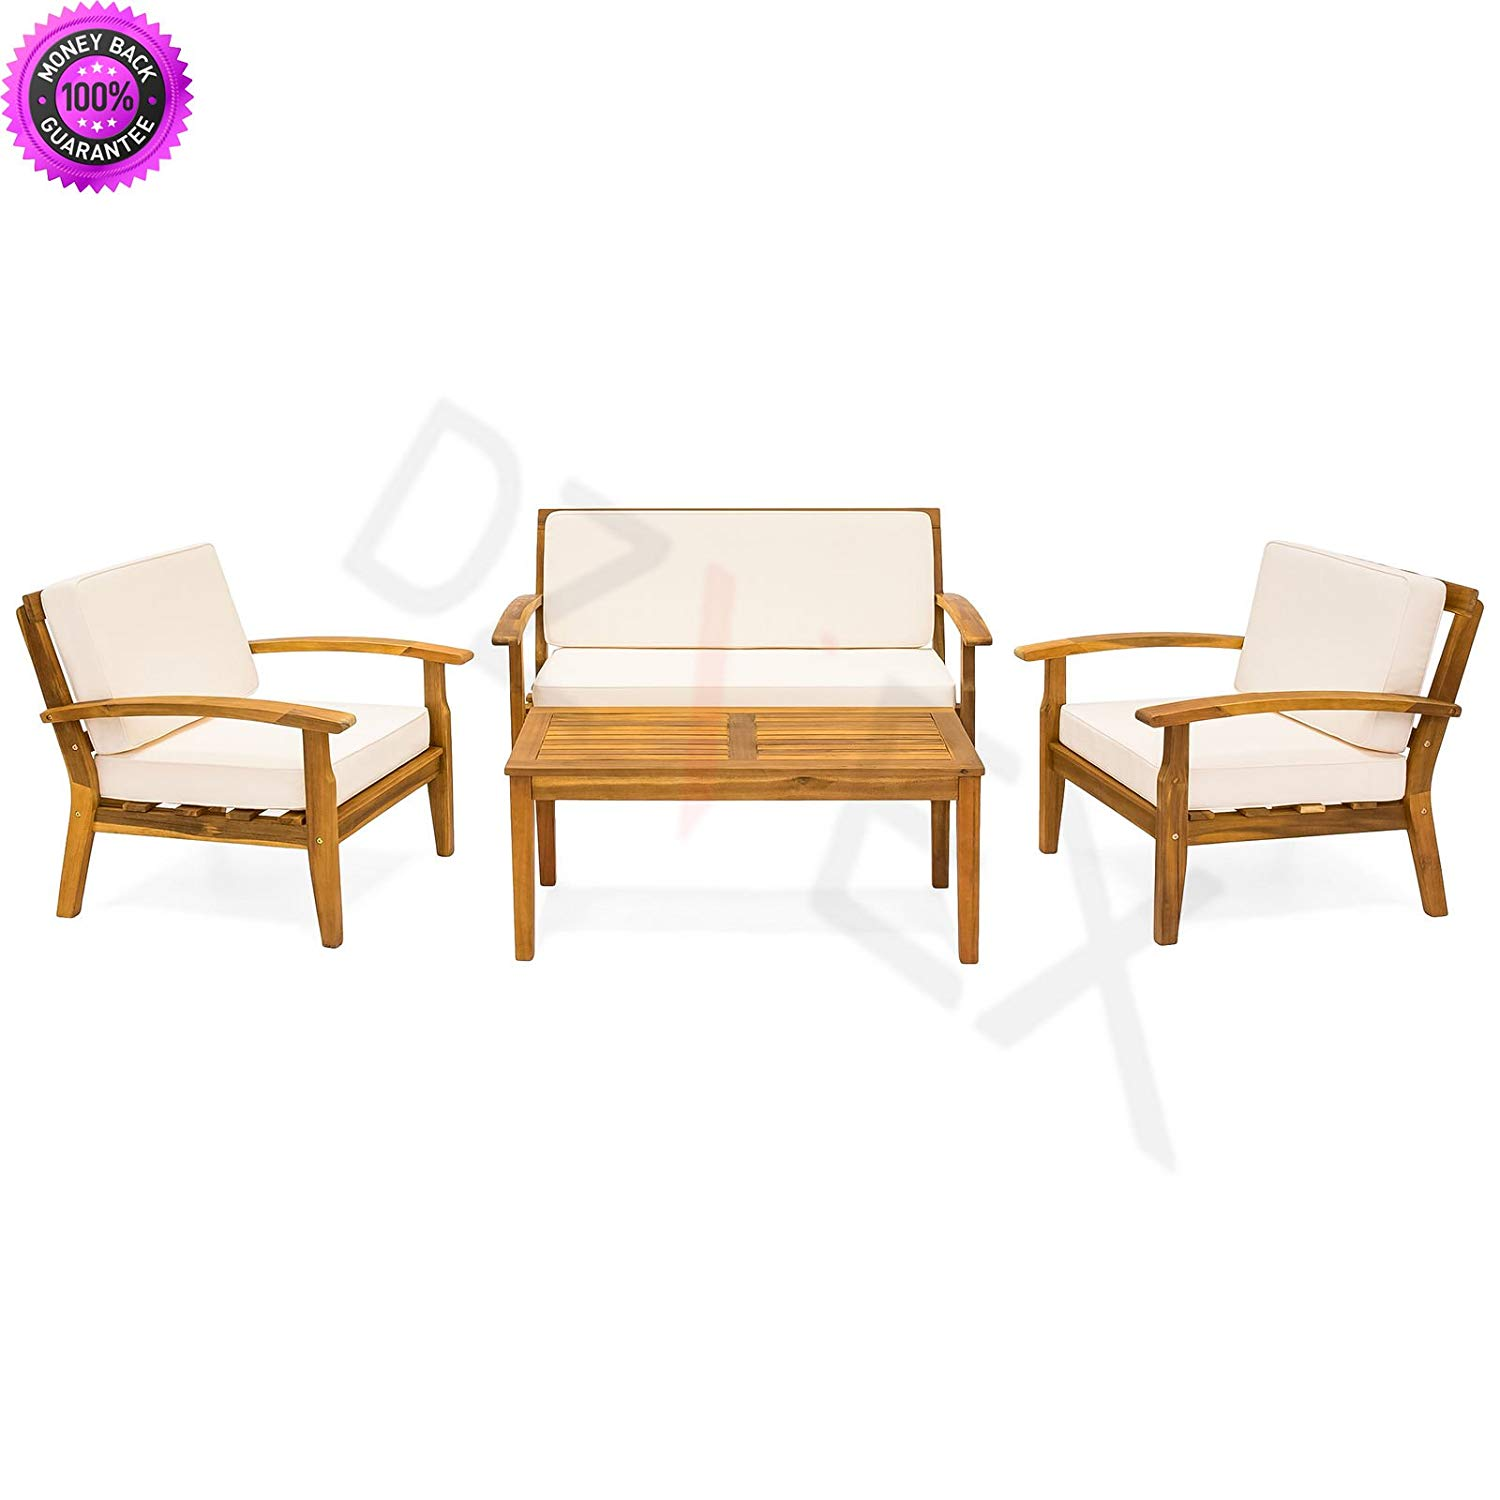 Cheap Outdoor Furniture Cushions Lowes Find Outdoor Furniture Cushions Lowes Deals On Line At Alibaba Com